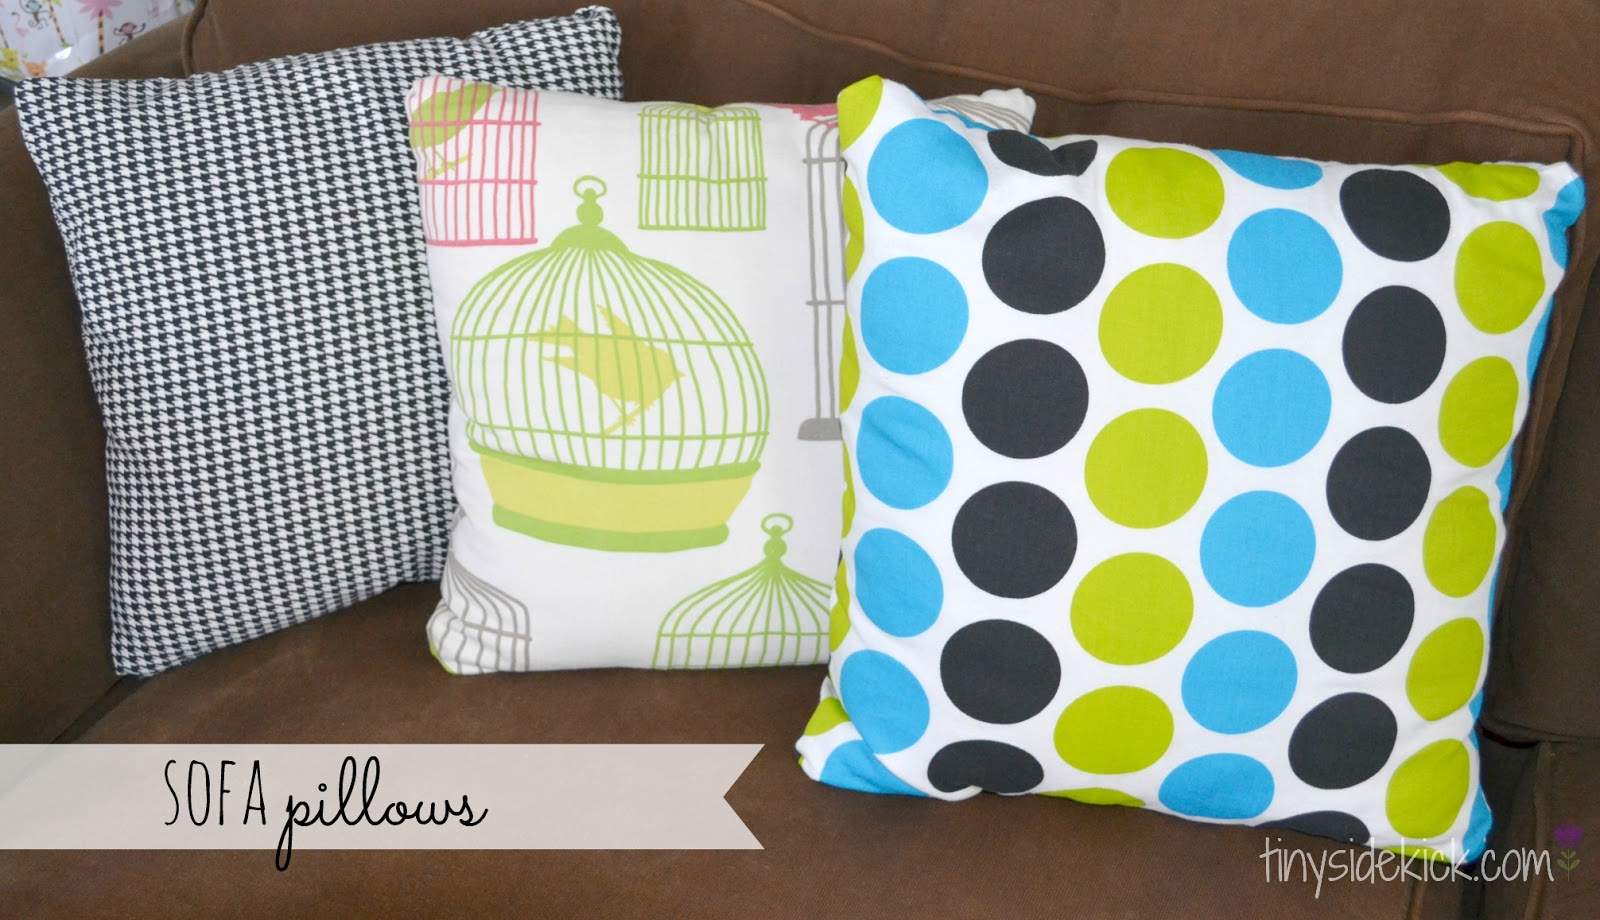 DIY Zippered Pillow Covers: Just Remove and Wash when the kids goober on them : & DIY Zippered Pillow Covers | Install a zipper | washable pillow covers pillowsntoast.com